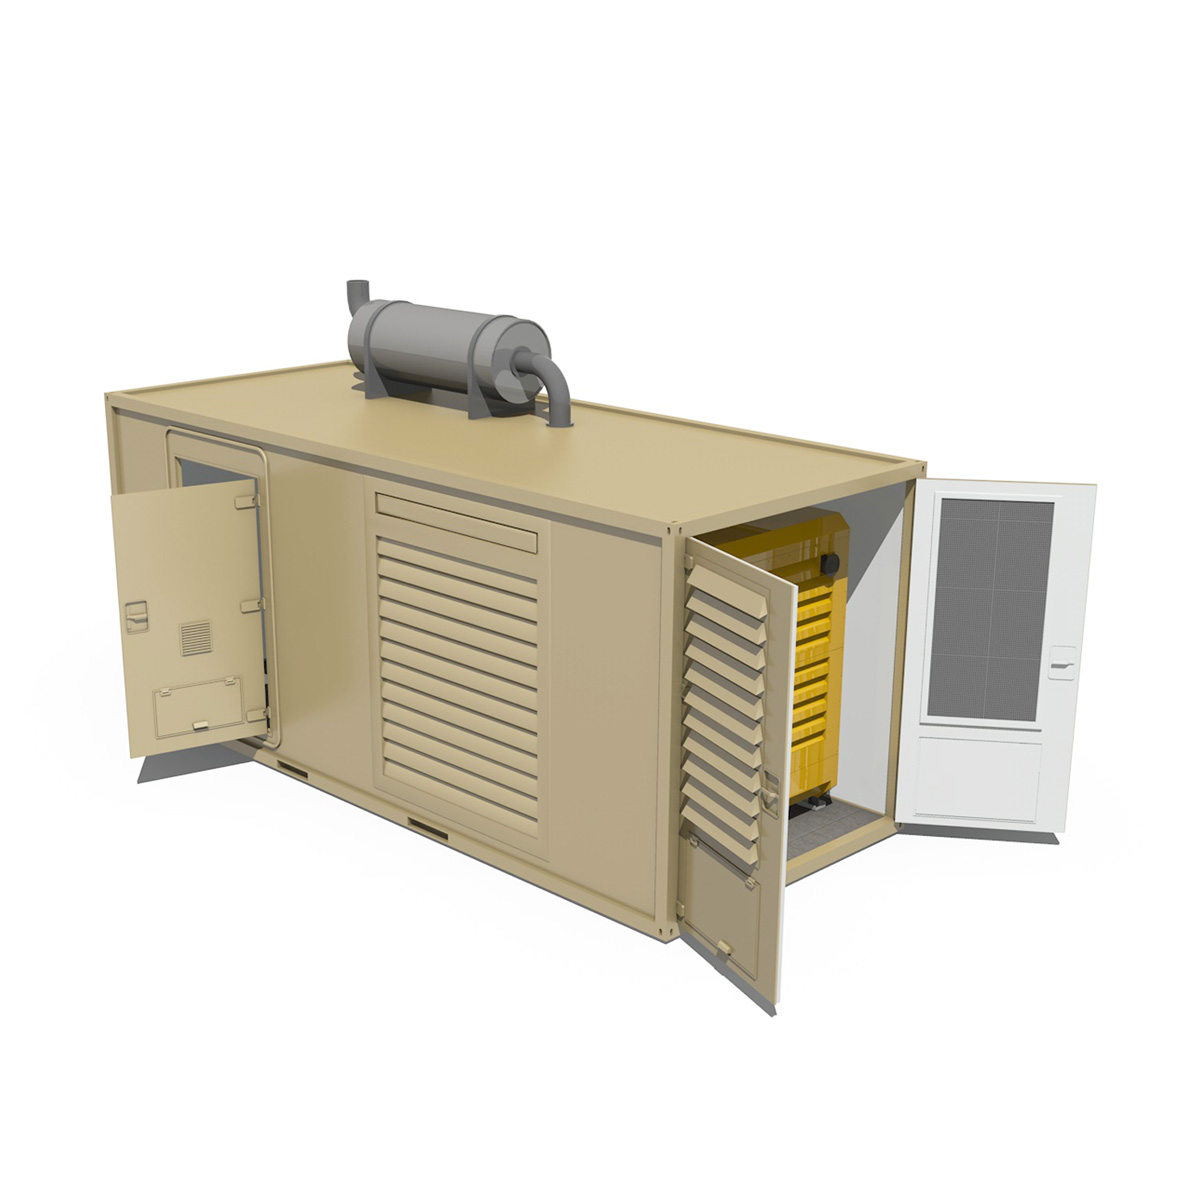 20ft generator container version two 3d model 3ds c4d fbx lwo lw lws obj 264739